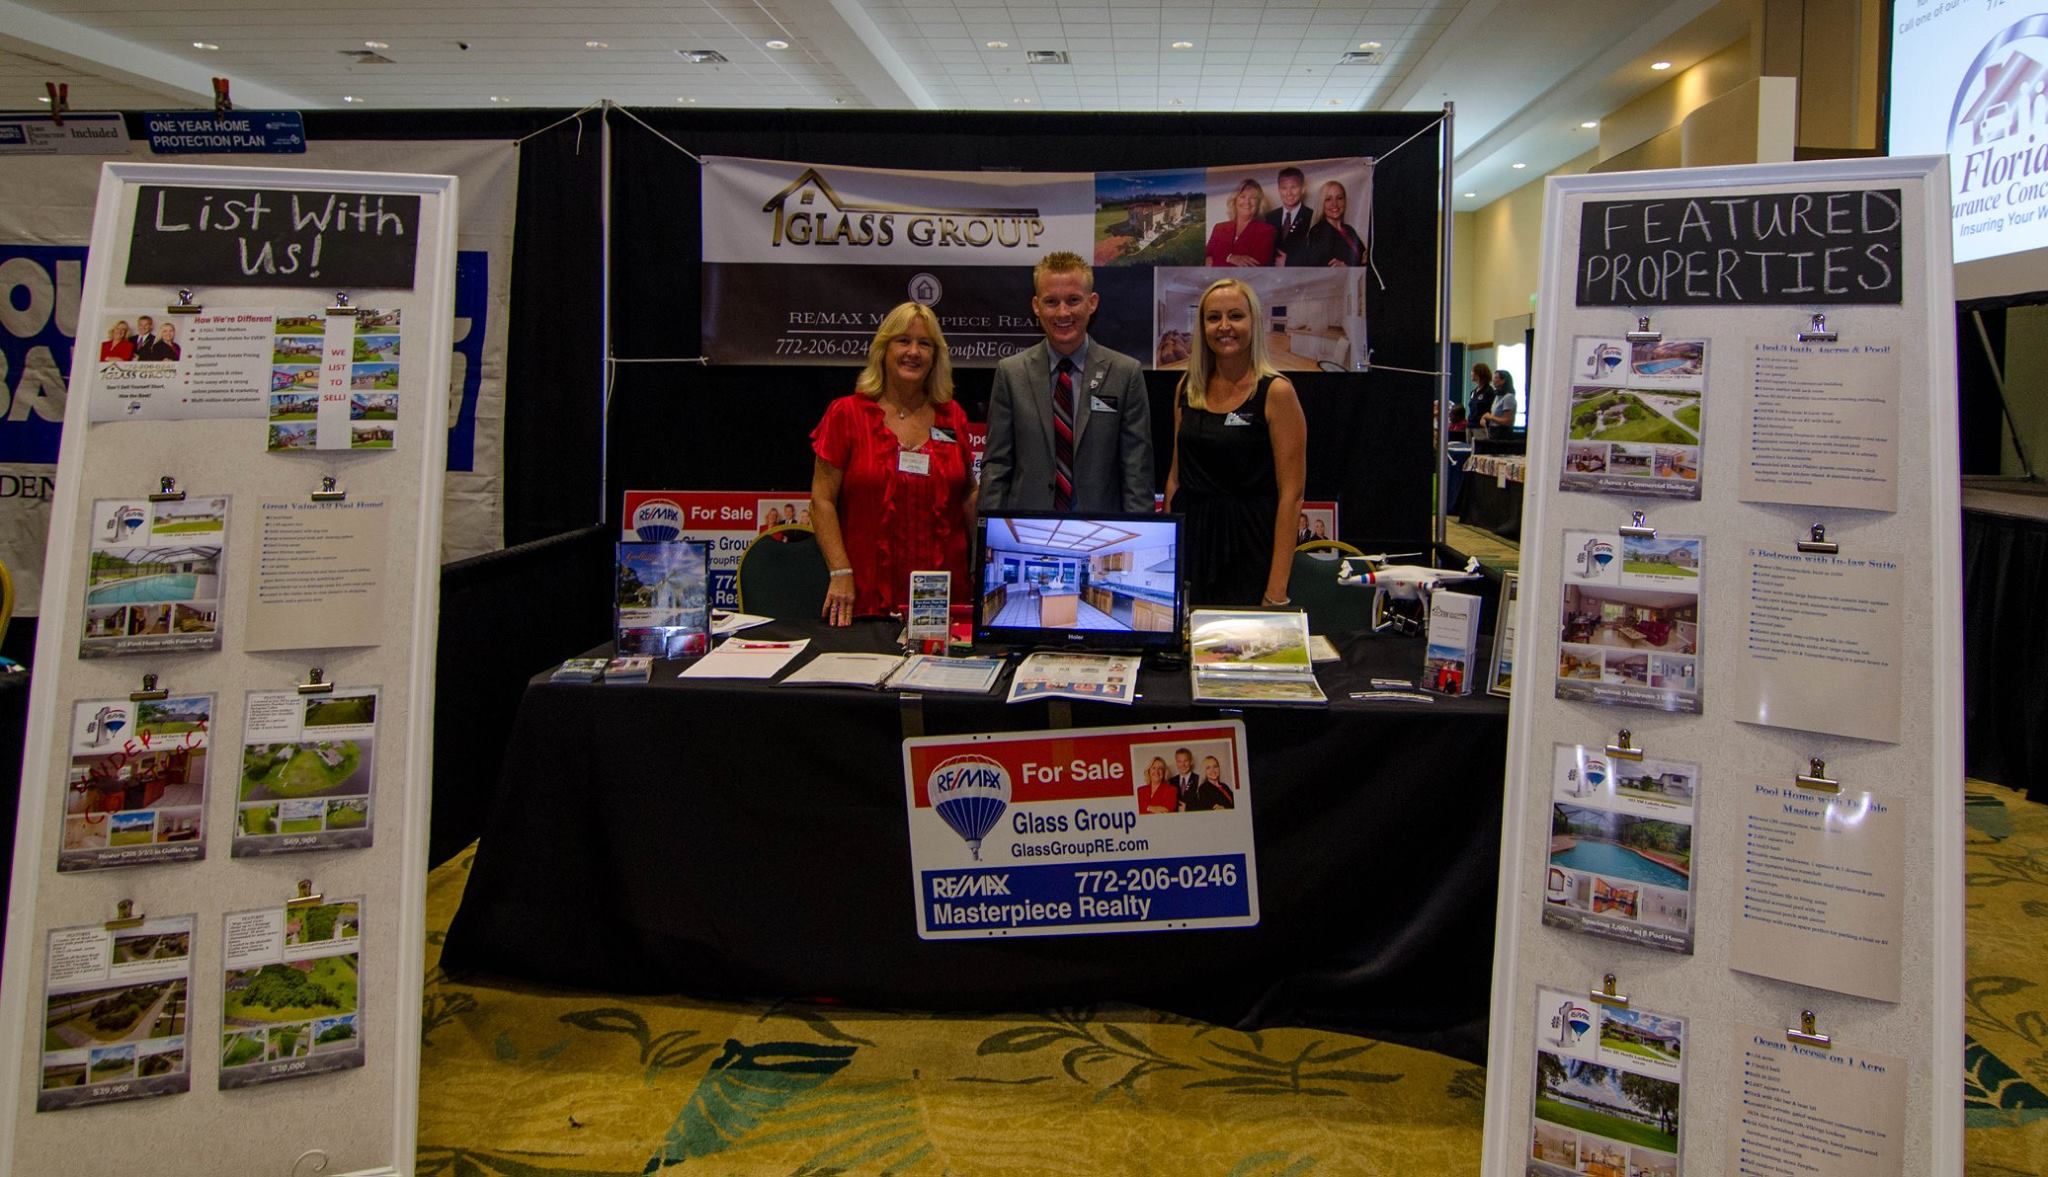 Property Exhibition Booth : Treasure coast real estate expo tradition fl